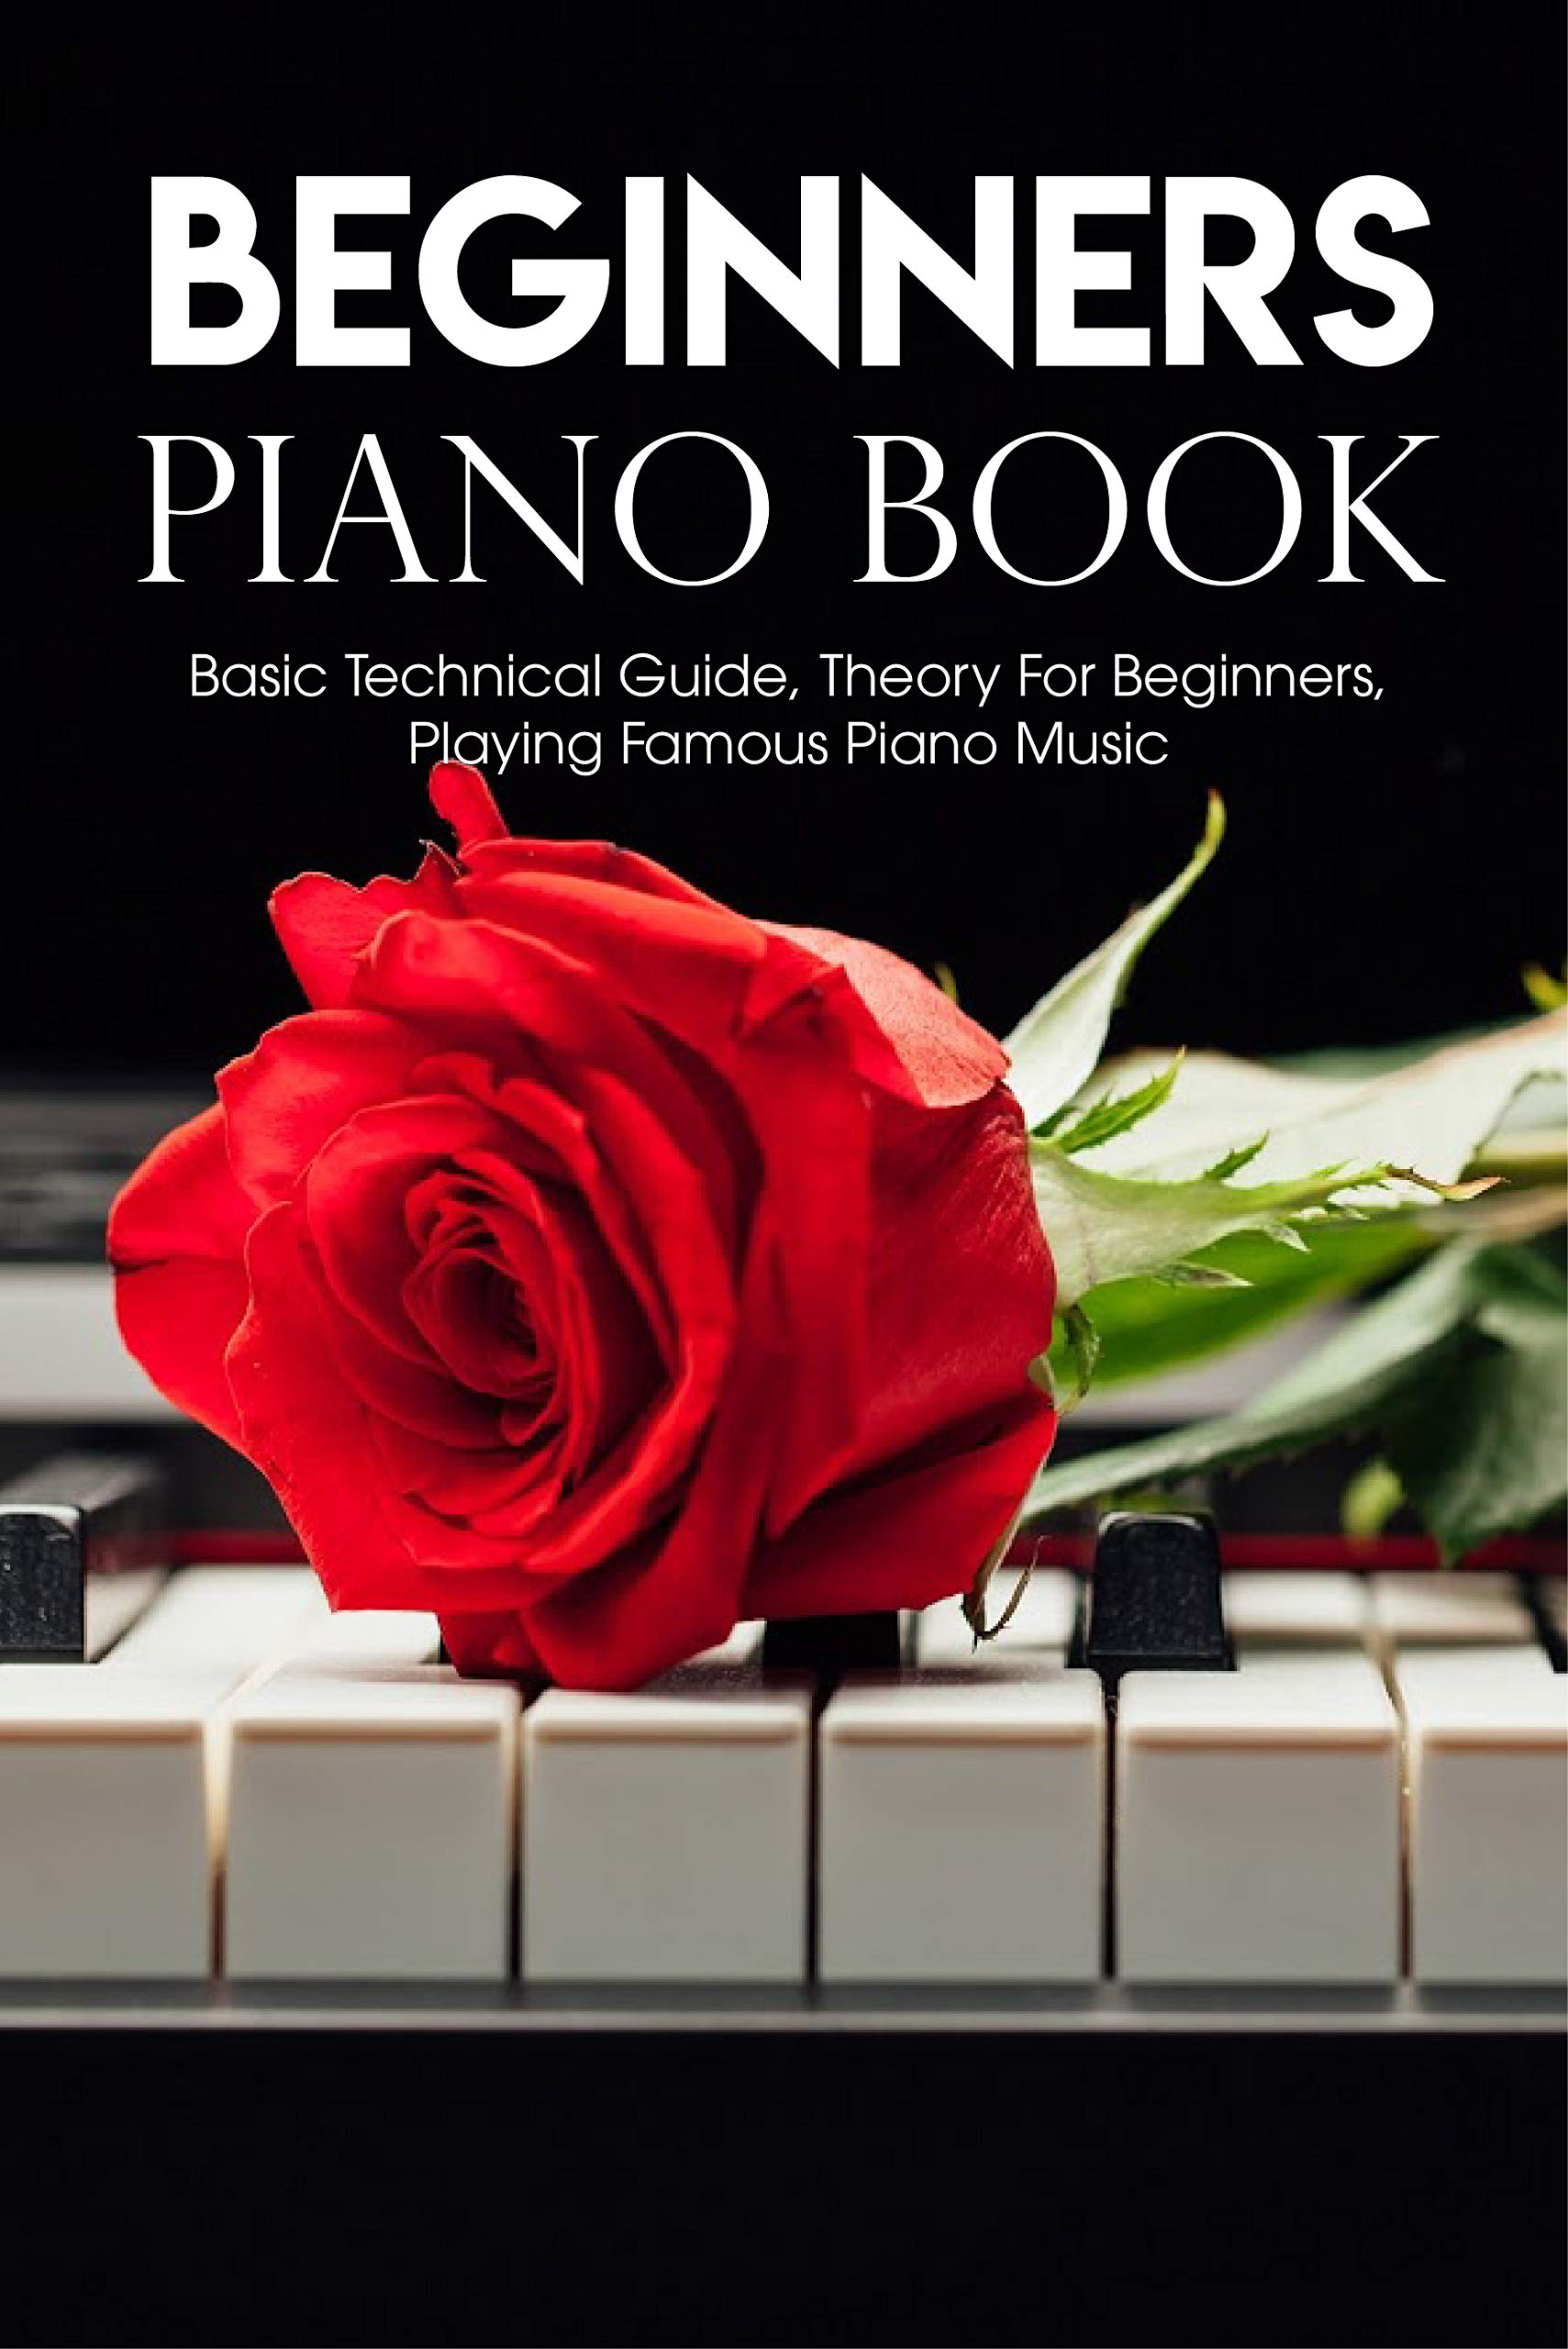 Beginners Piano Book Basic Technical Guide, Theory For Beginners, Playing Famous Piano Music: Easy Piano Music Books Popular Songs